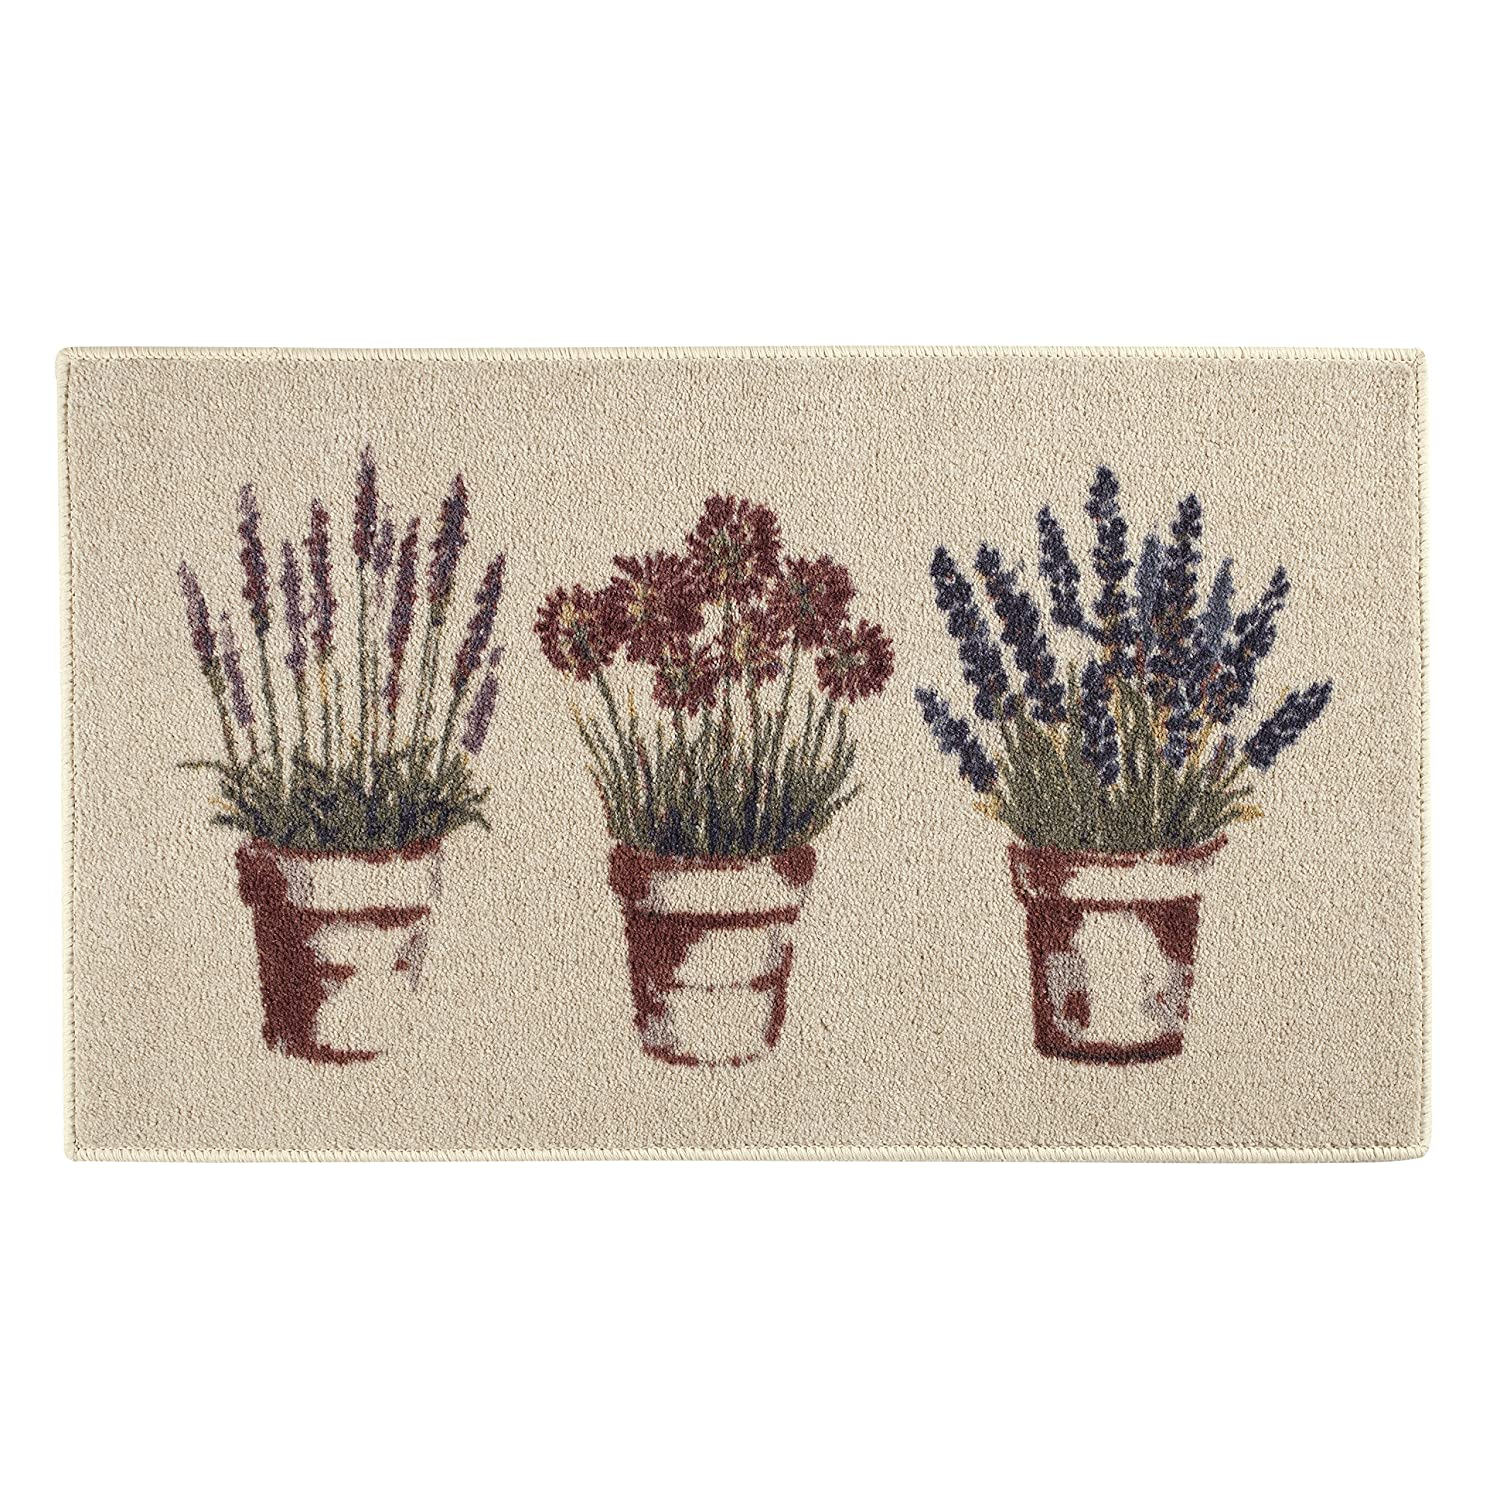 """""""Flagship Carpets Spring Flower and Plant Door Mat or Entryway and Kitchen Area Rug, 20""""""""x34"""""""", Rectangle"""", tan (CN631-20x34BH)"""